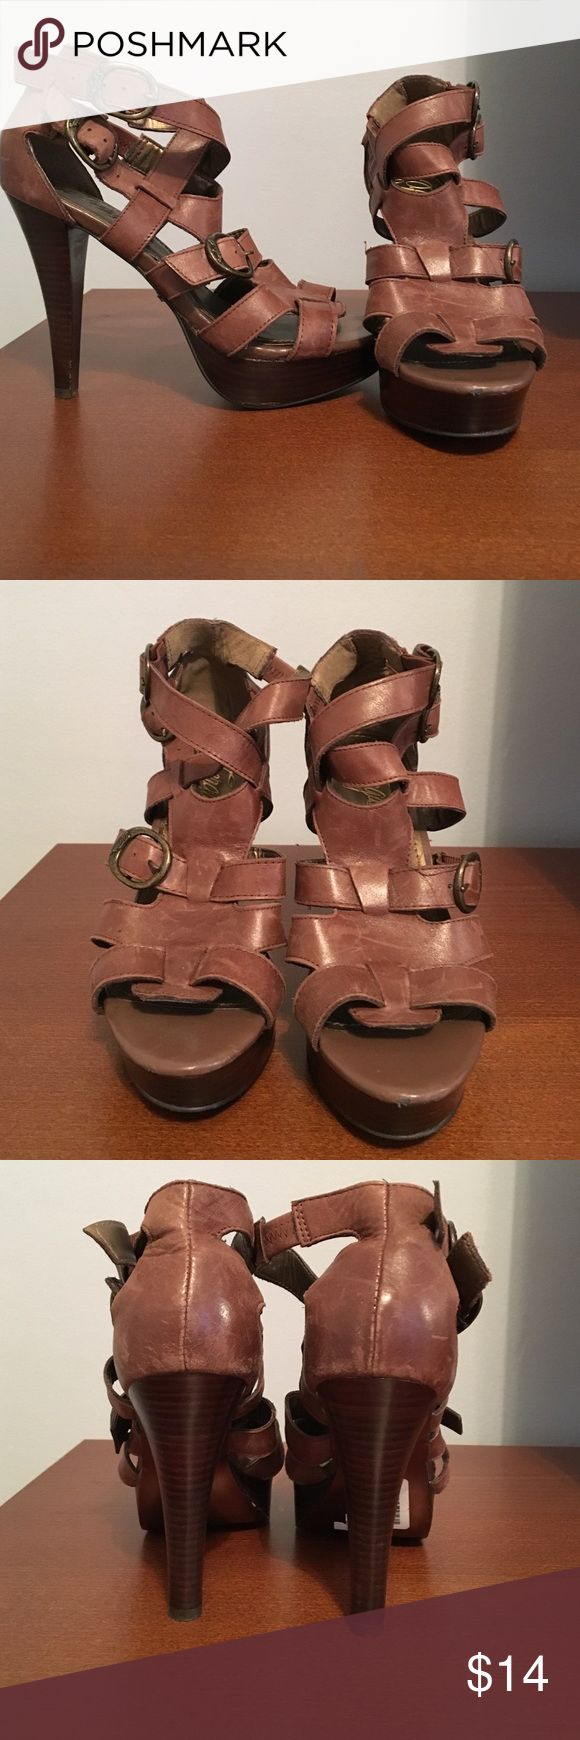 Brown Fergie Heels Brown leather heels. Appox. 4 inches. Fergie Shoes Platforms